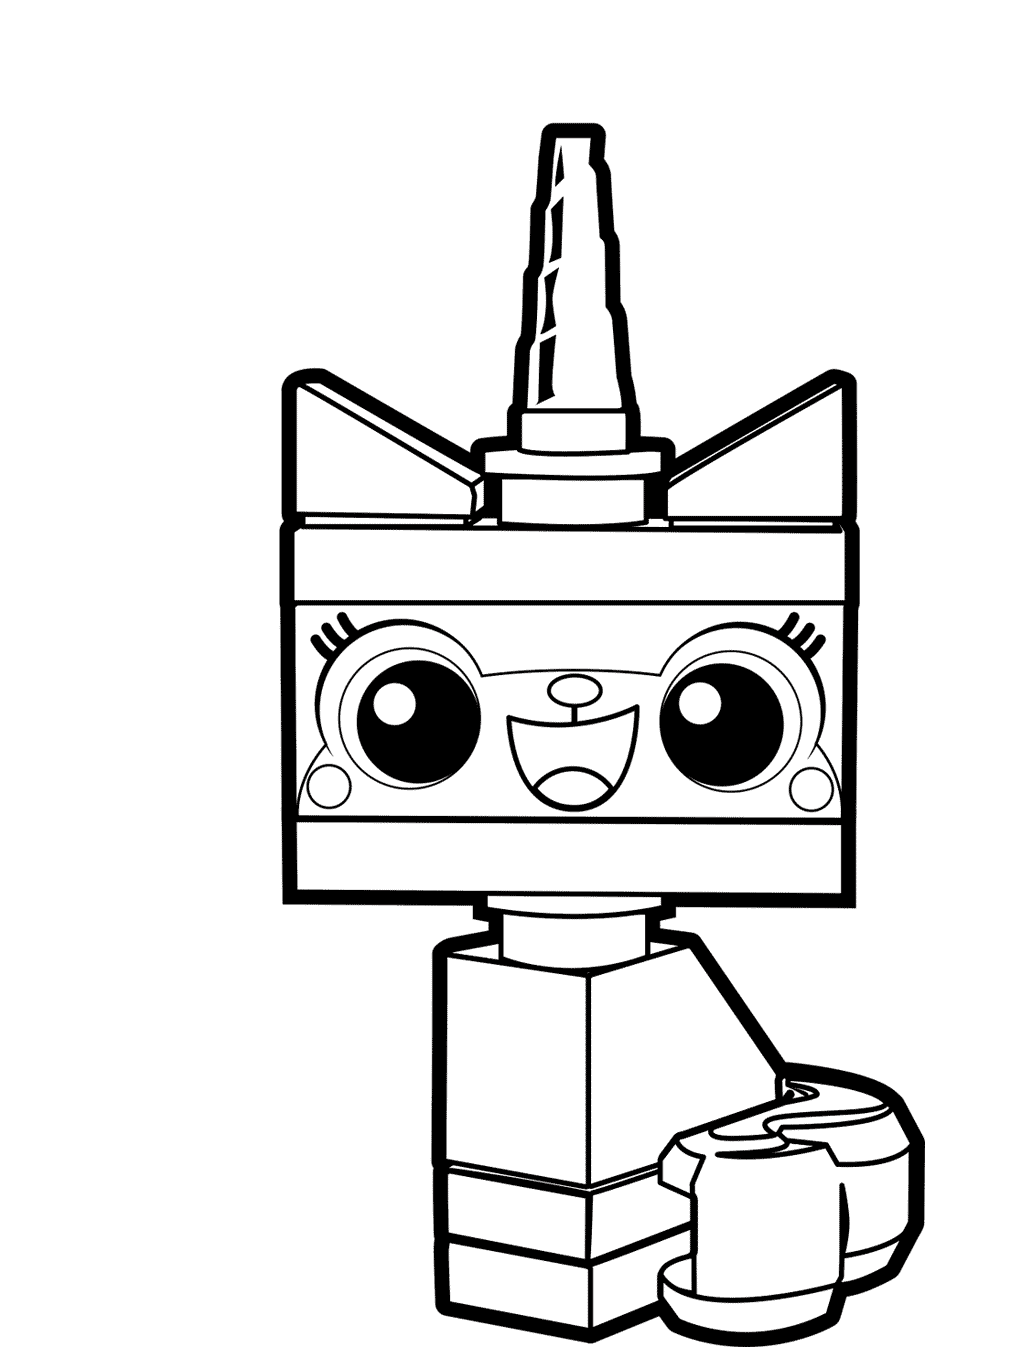 unikitty coloring sheets unikitty coloring pages at getcoloringscom free sketch unikitty coloring sheets